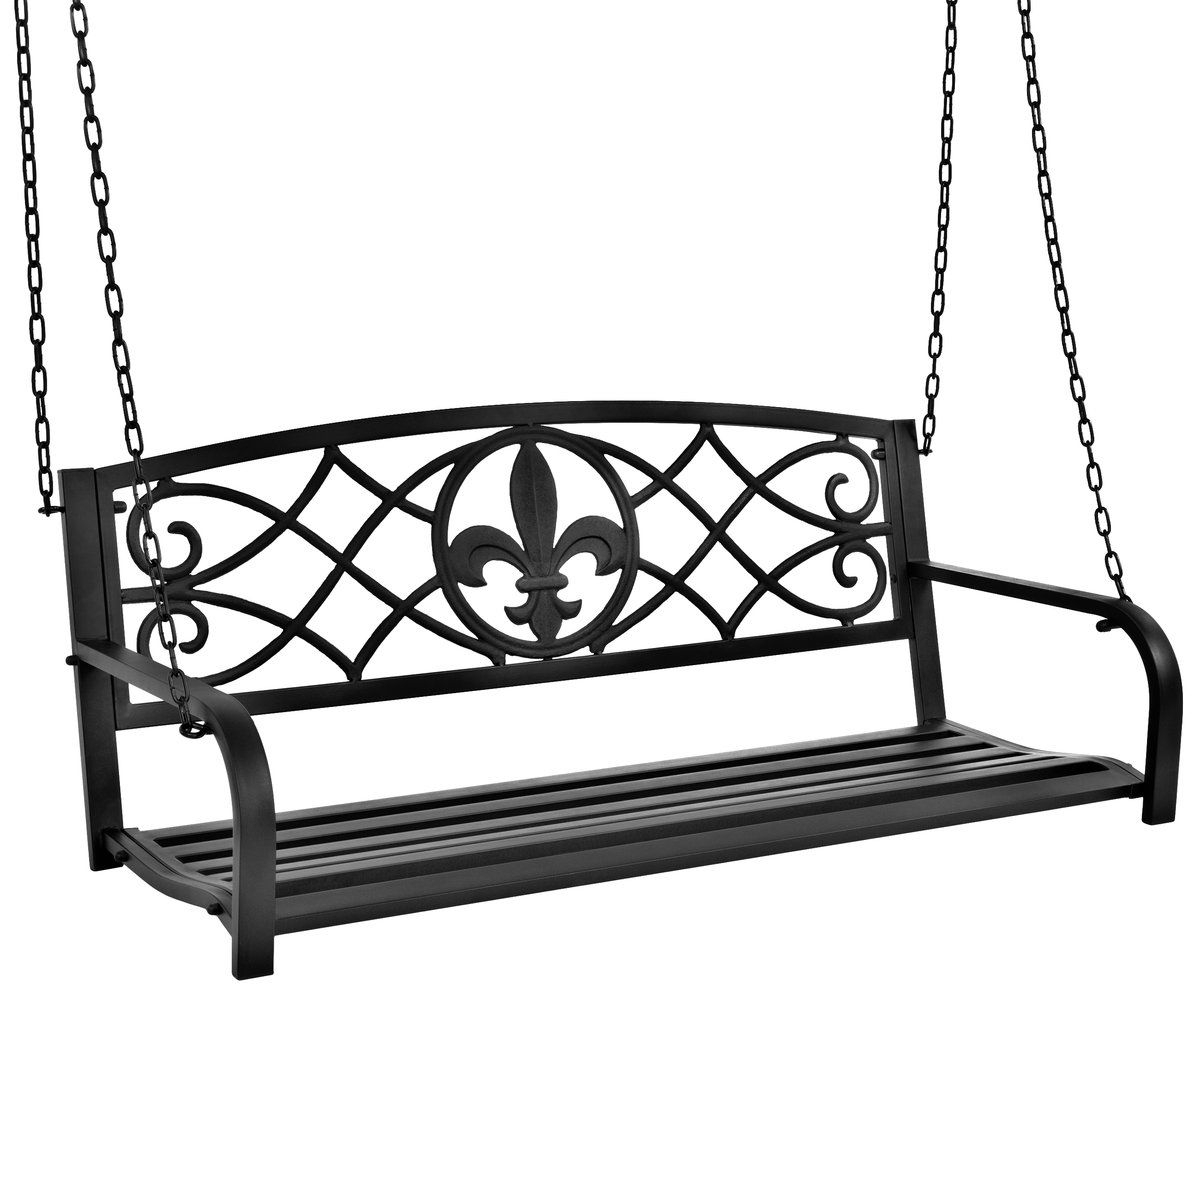 Outdoor Metal Hanging 2 Person Swing Bench W/ Fleur De Lis With Regard To 2 Person Gray Steel Outdoor Swings (View 5 of 25)